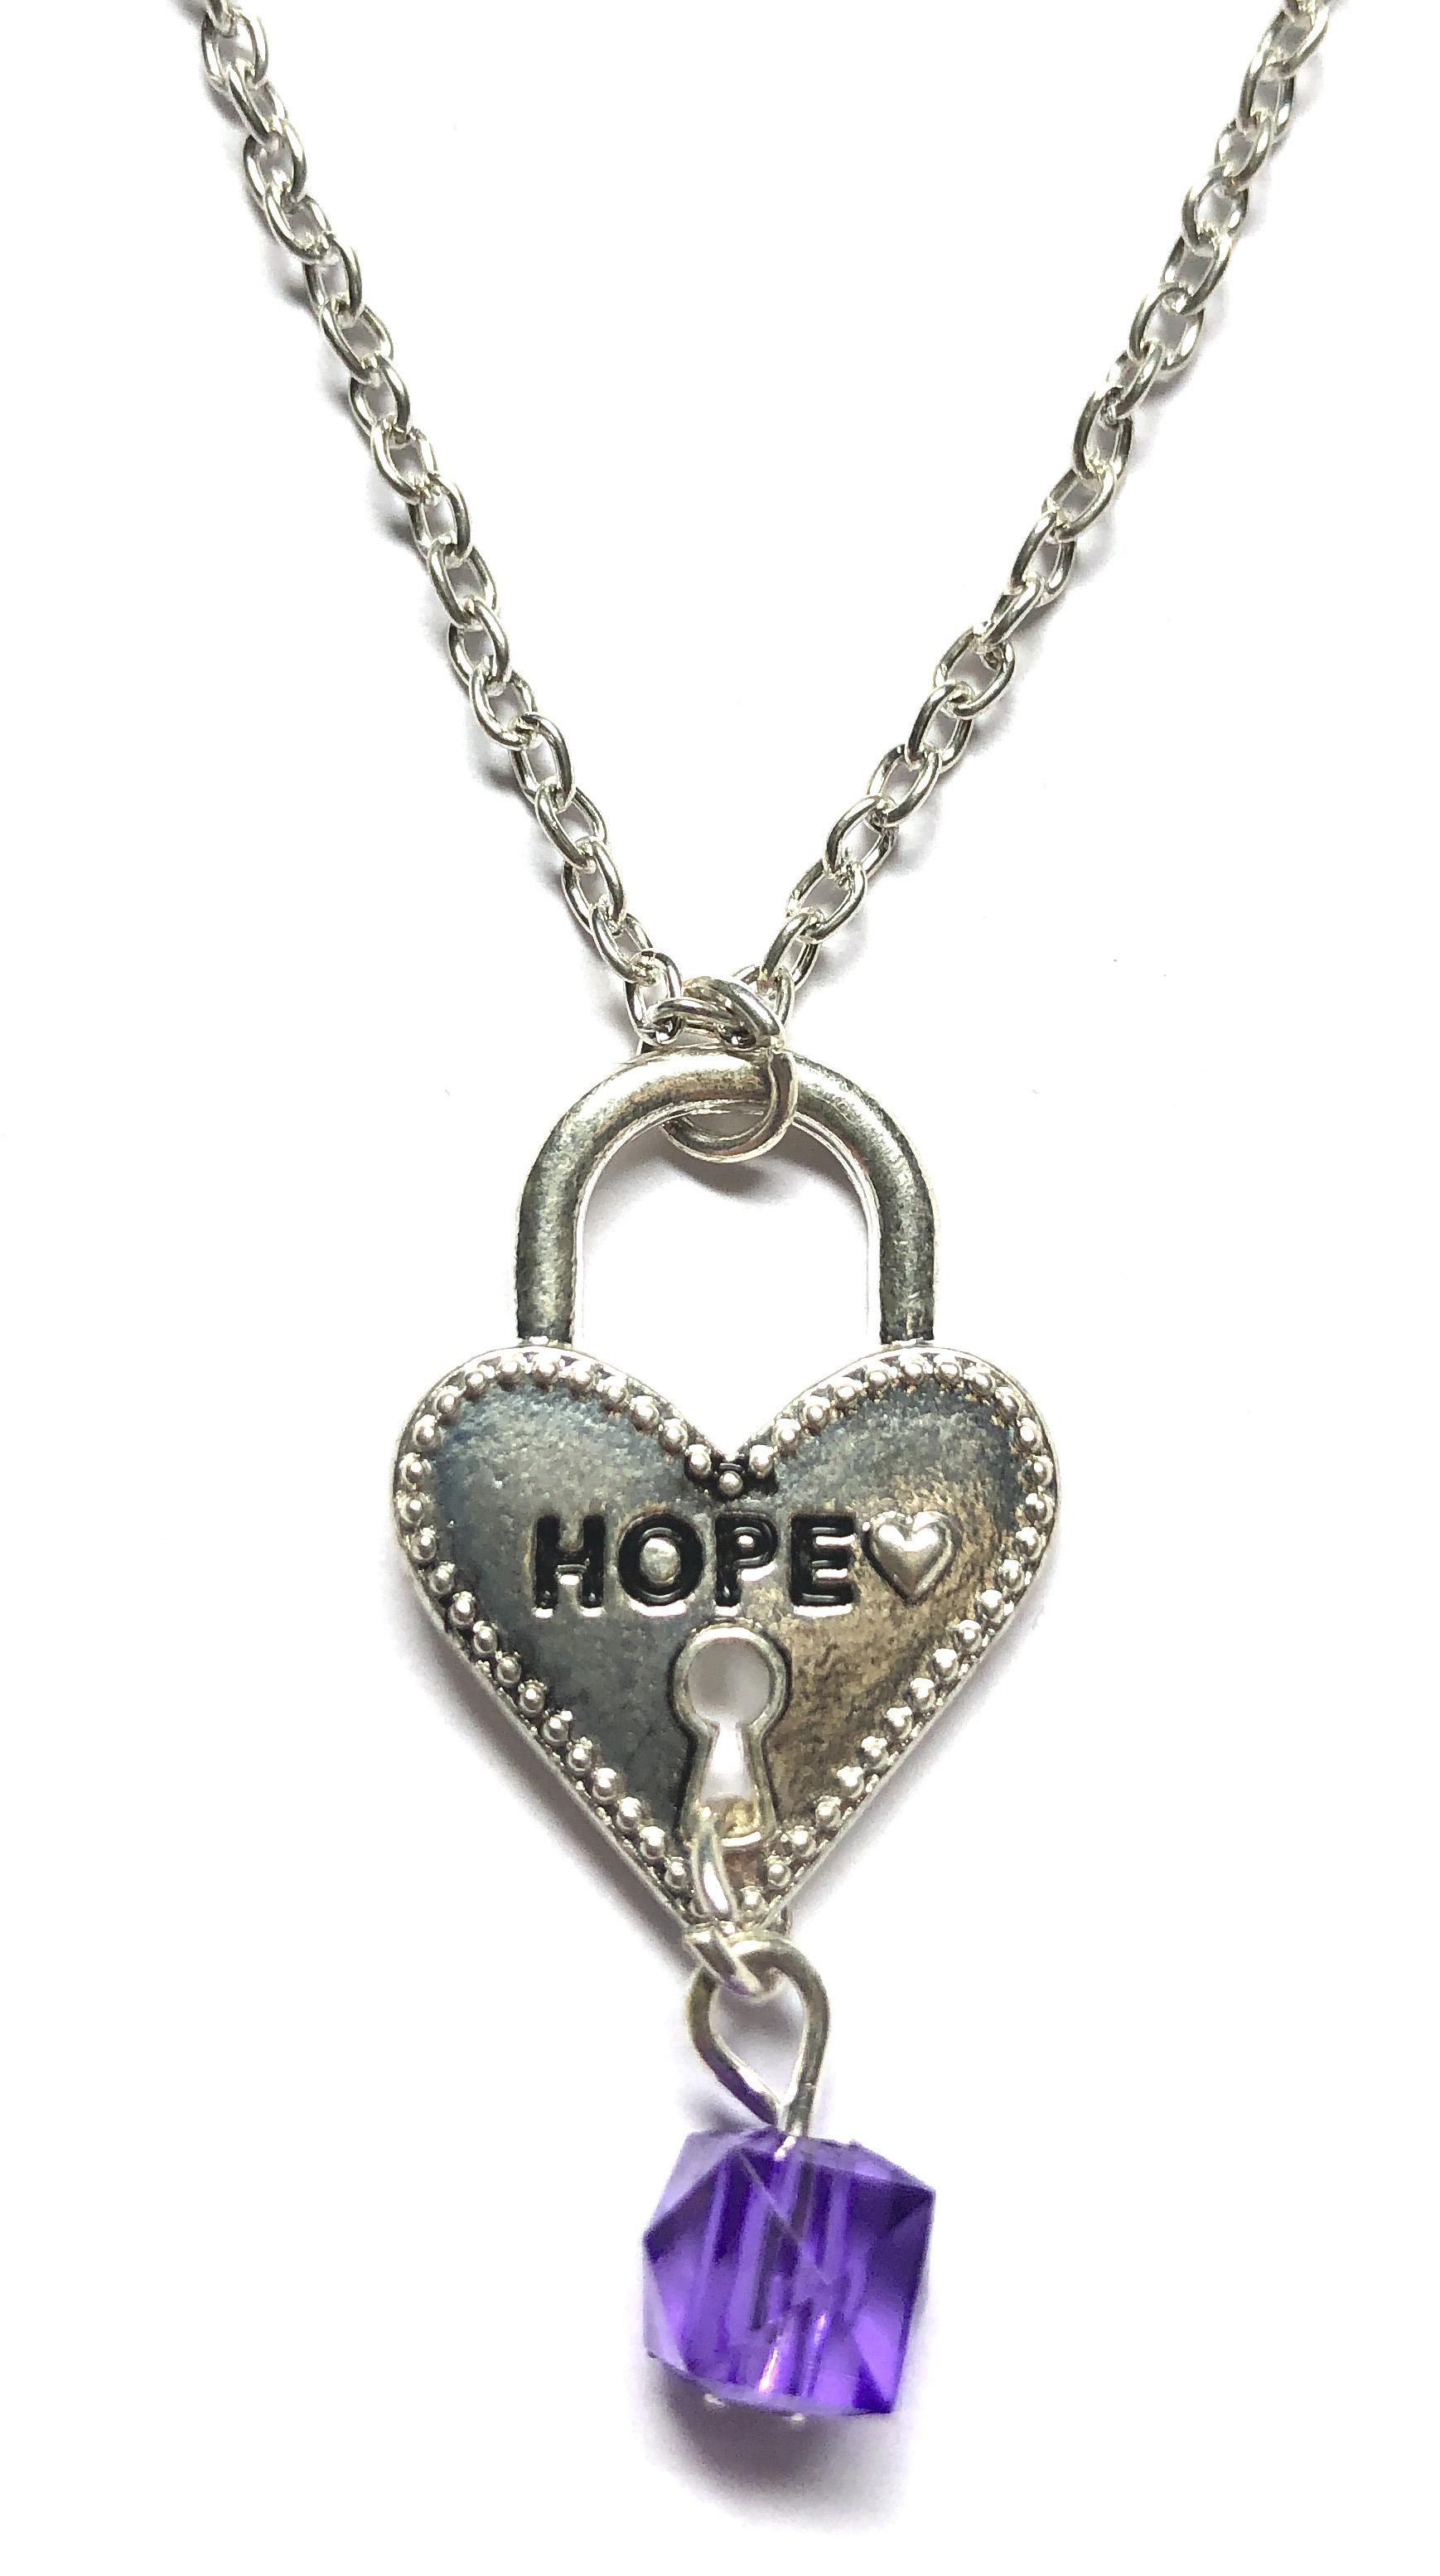 Hope Heart Necklace